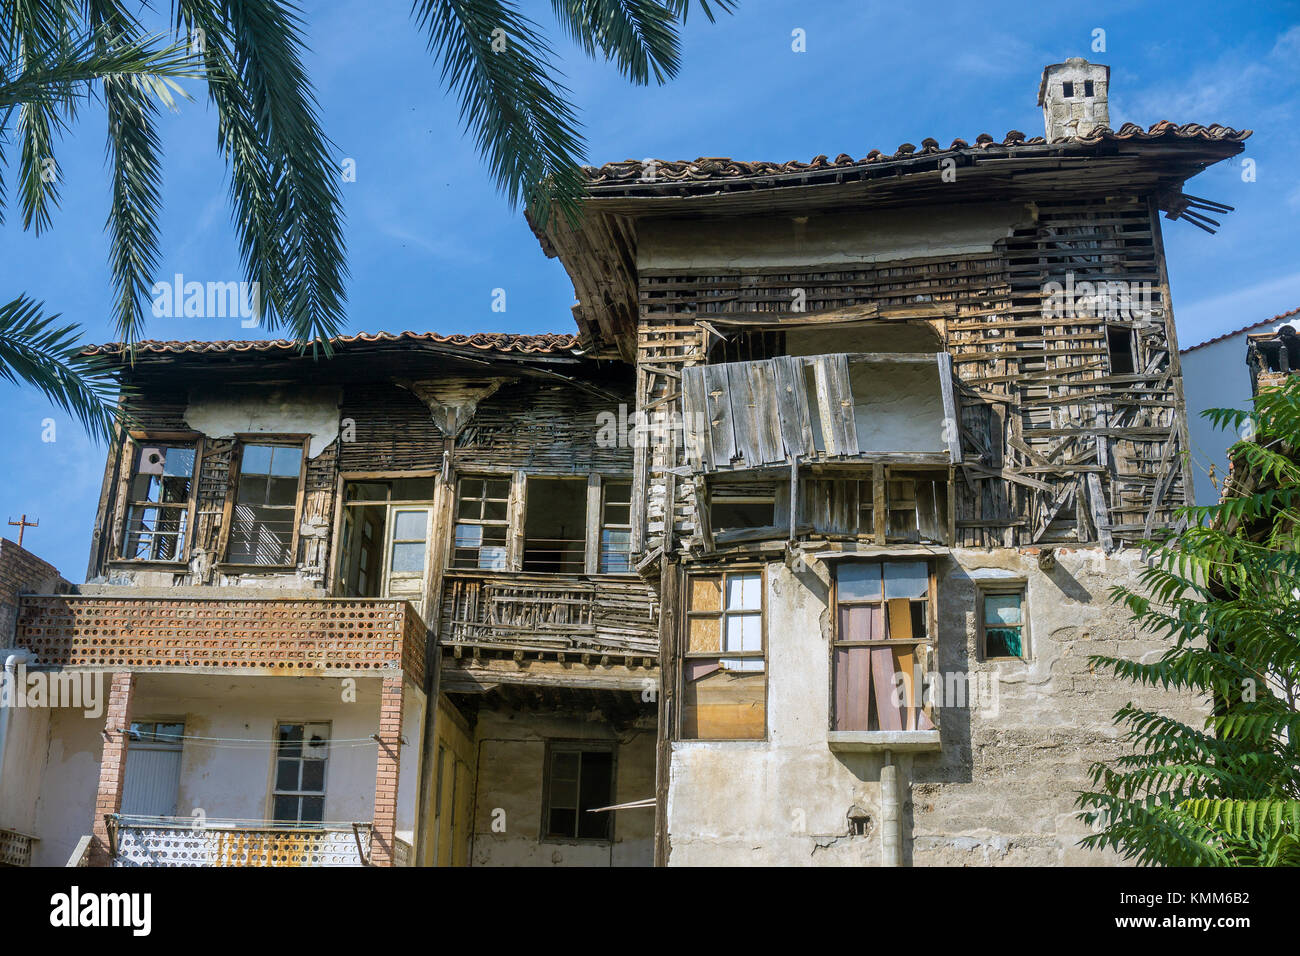 Old ottoman wooden house at Kaleici, the old town of Antalya, turkish riviera, Turkey - Stock Image